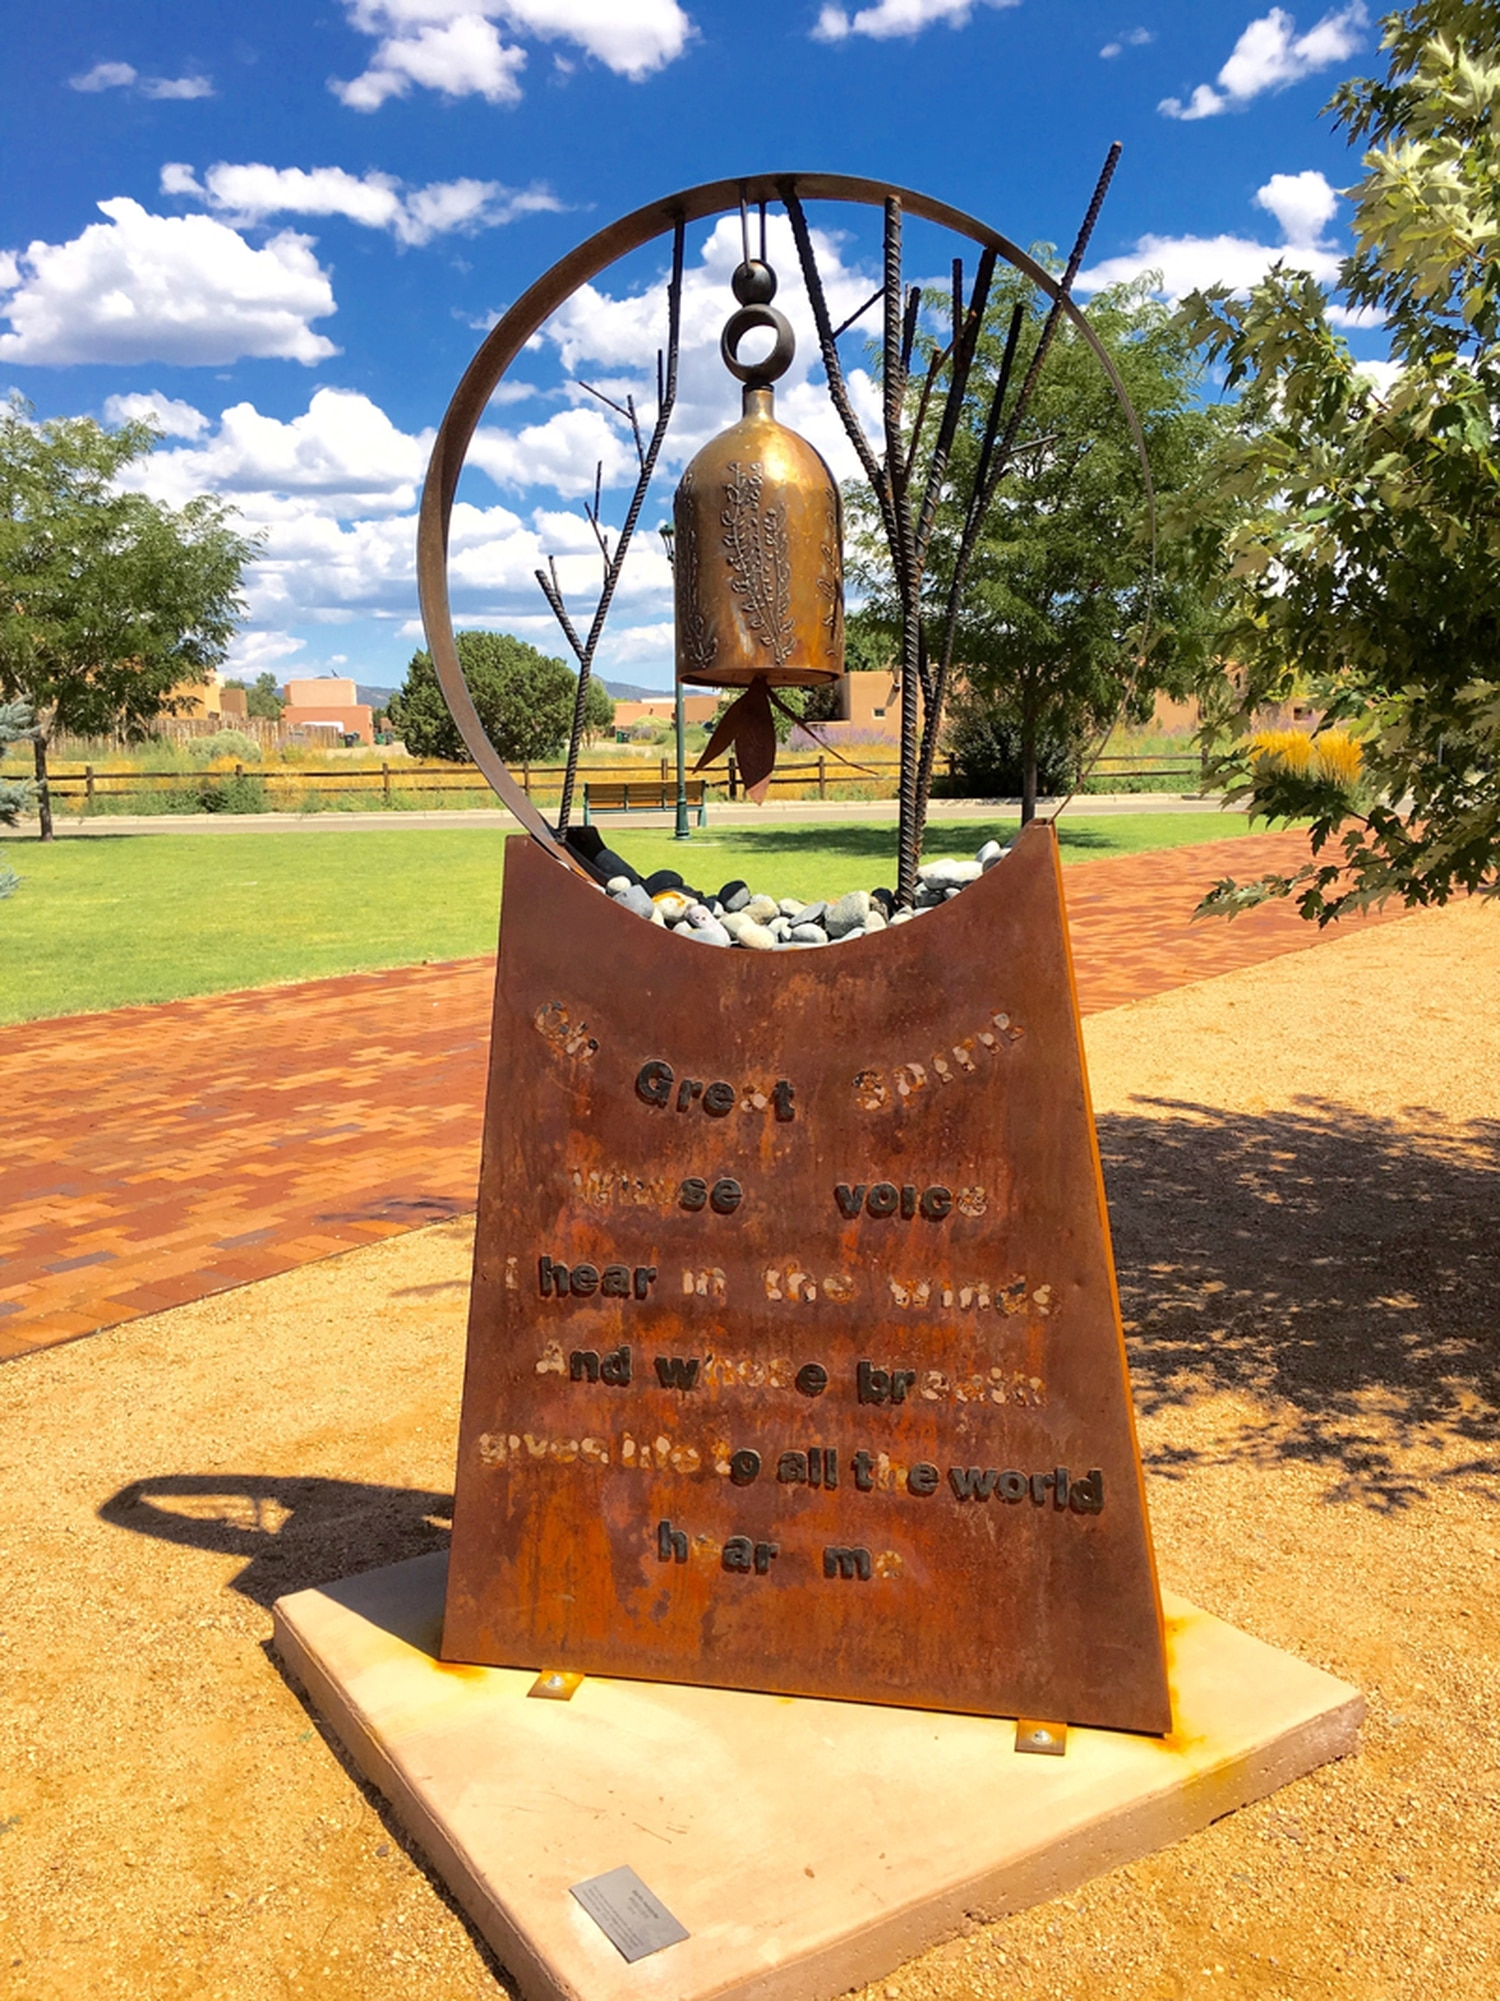 Words from a Lakota Sioux prayer were removed from the sculpture and scattered across Oshara Village Plaza | Courtesy of Sara Miller